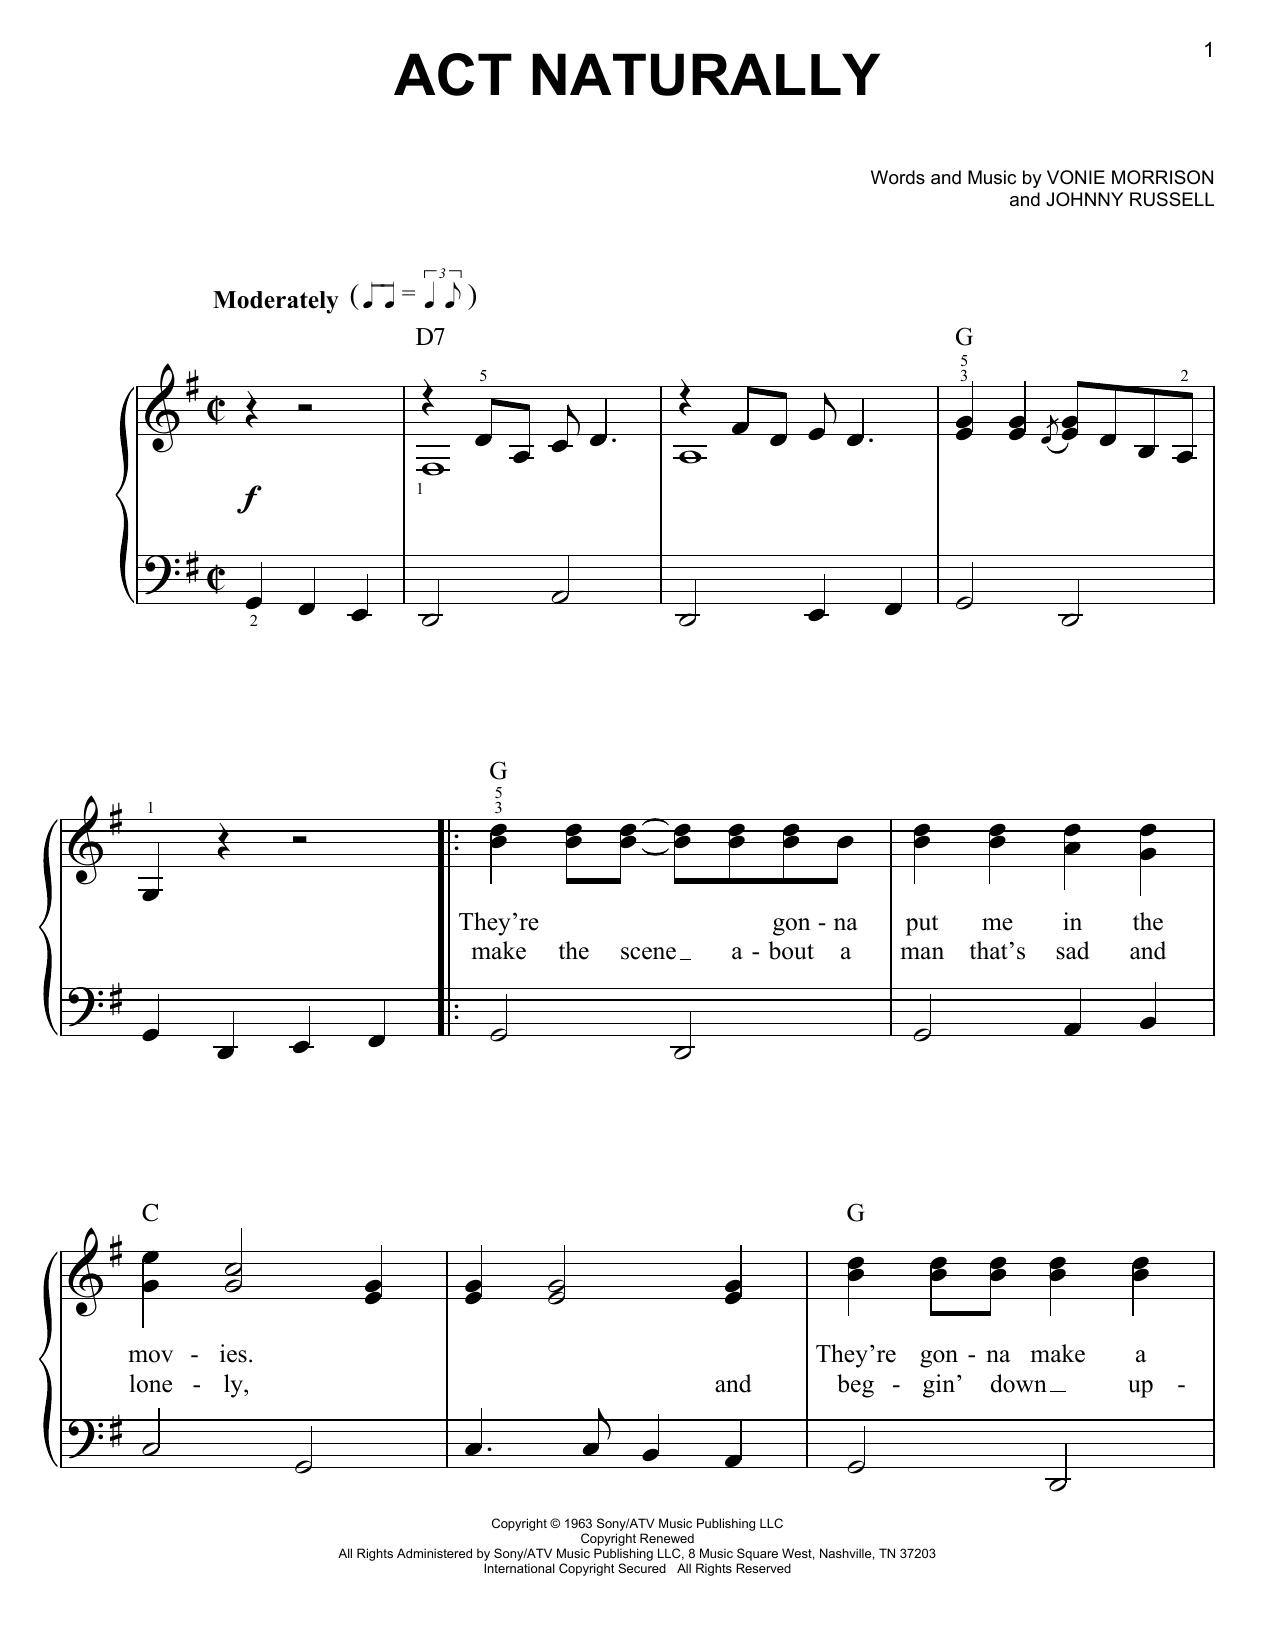 Act Naturally sheet music for piano solo (chords) by Vonie Morrison